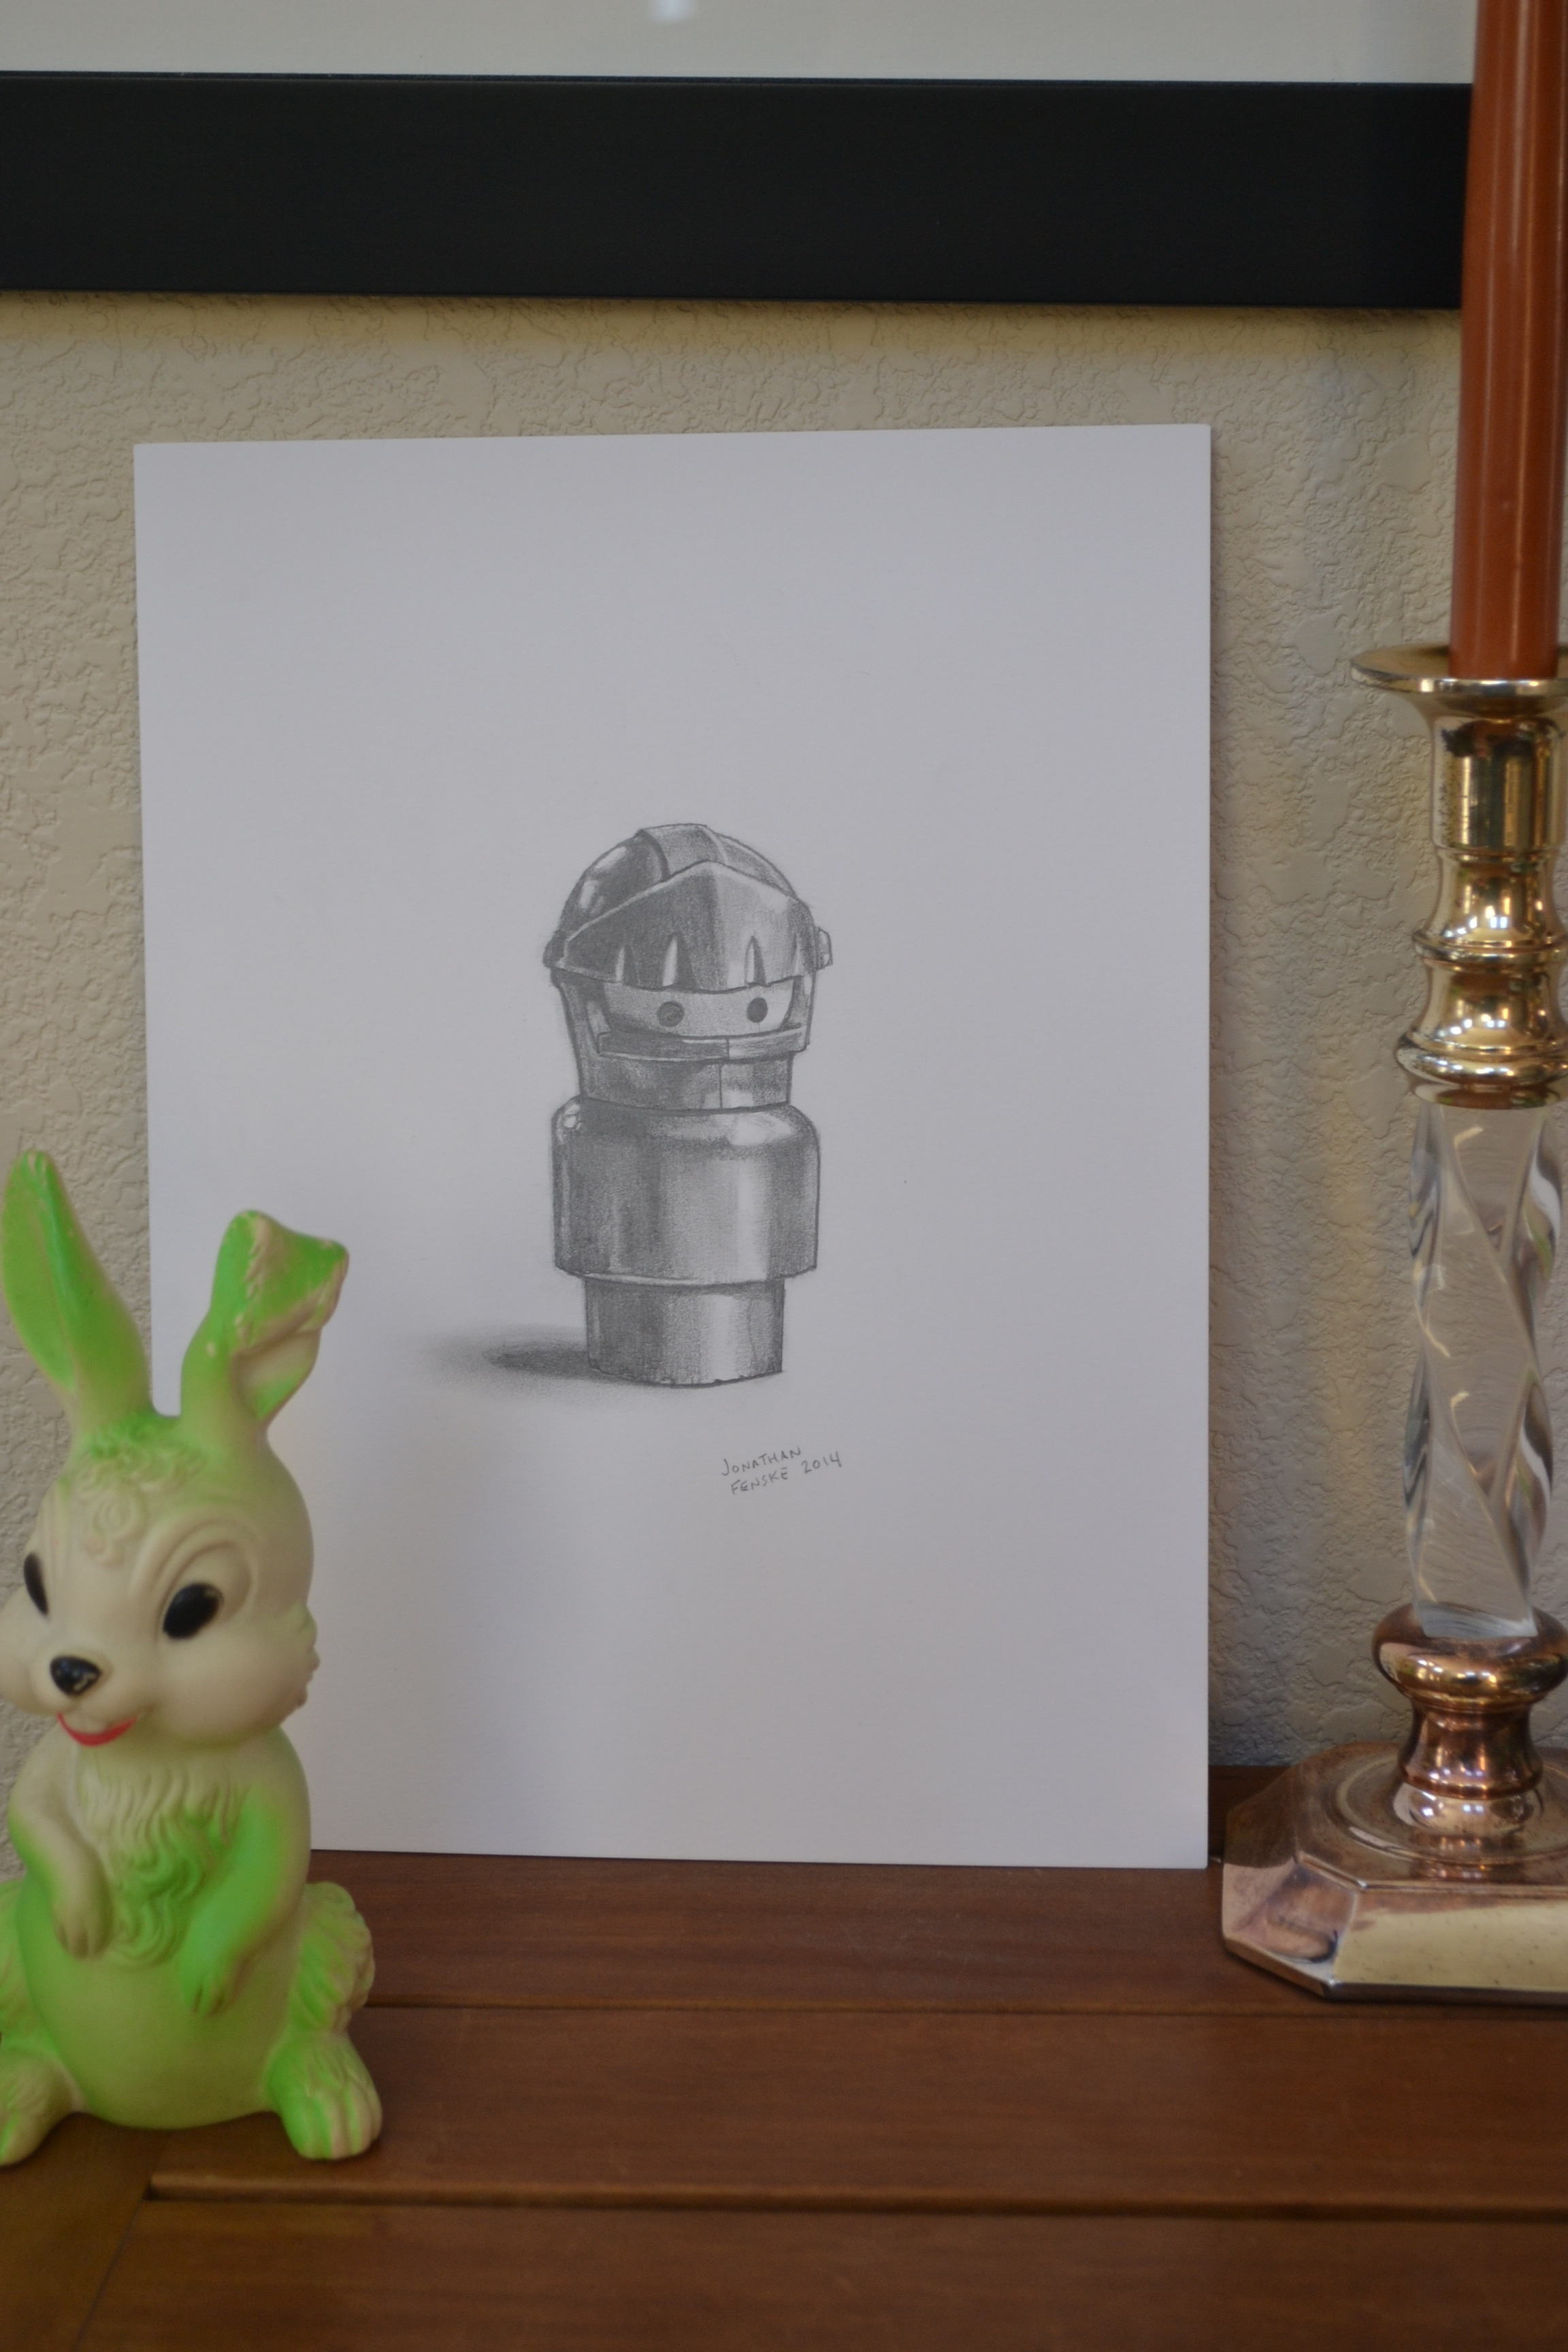 A graphite drawing of the knight from the Fisher Price Castle playset by Denver illustrator Jonathan Fenske